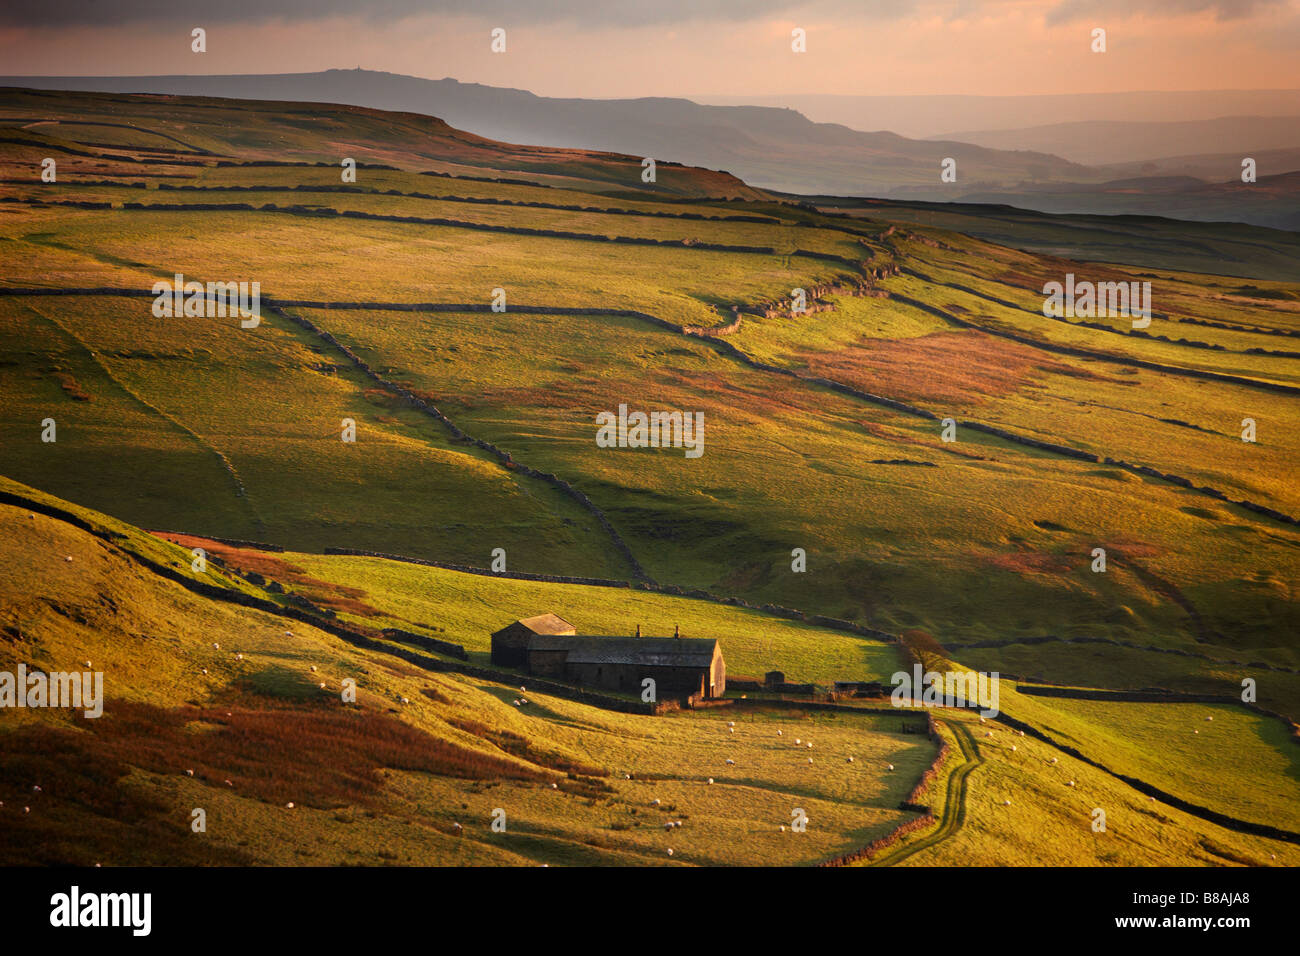 evening light on the stone walls and a farms of Wharfedale, nr Kettlewell, Yorkshire Dales National Park, England, - Stock Image